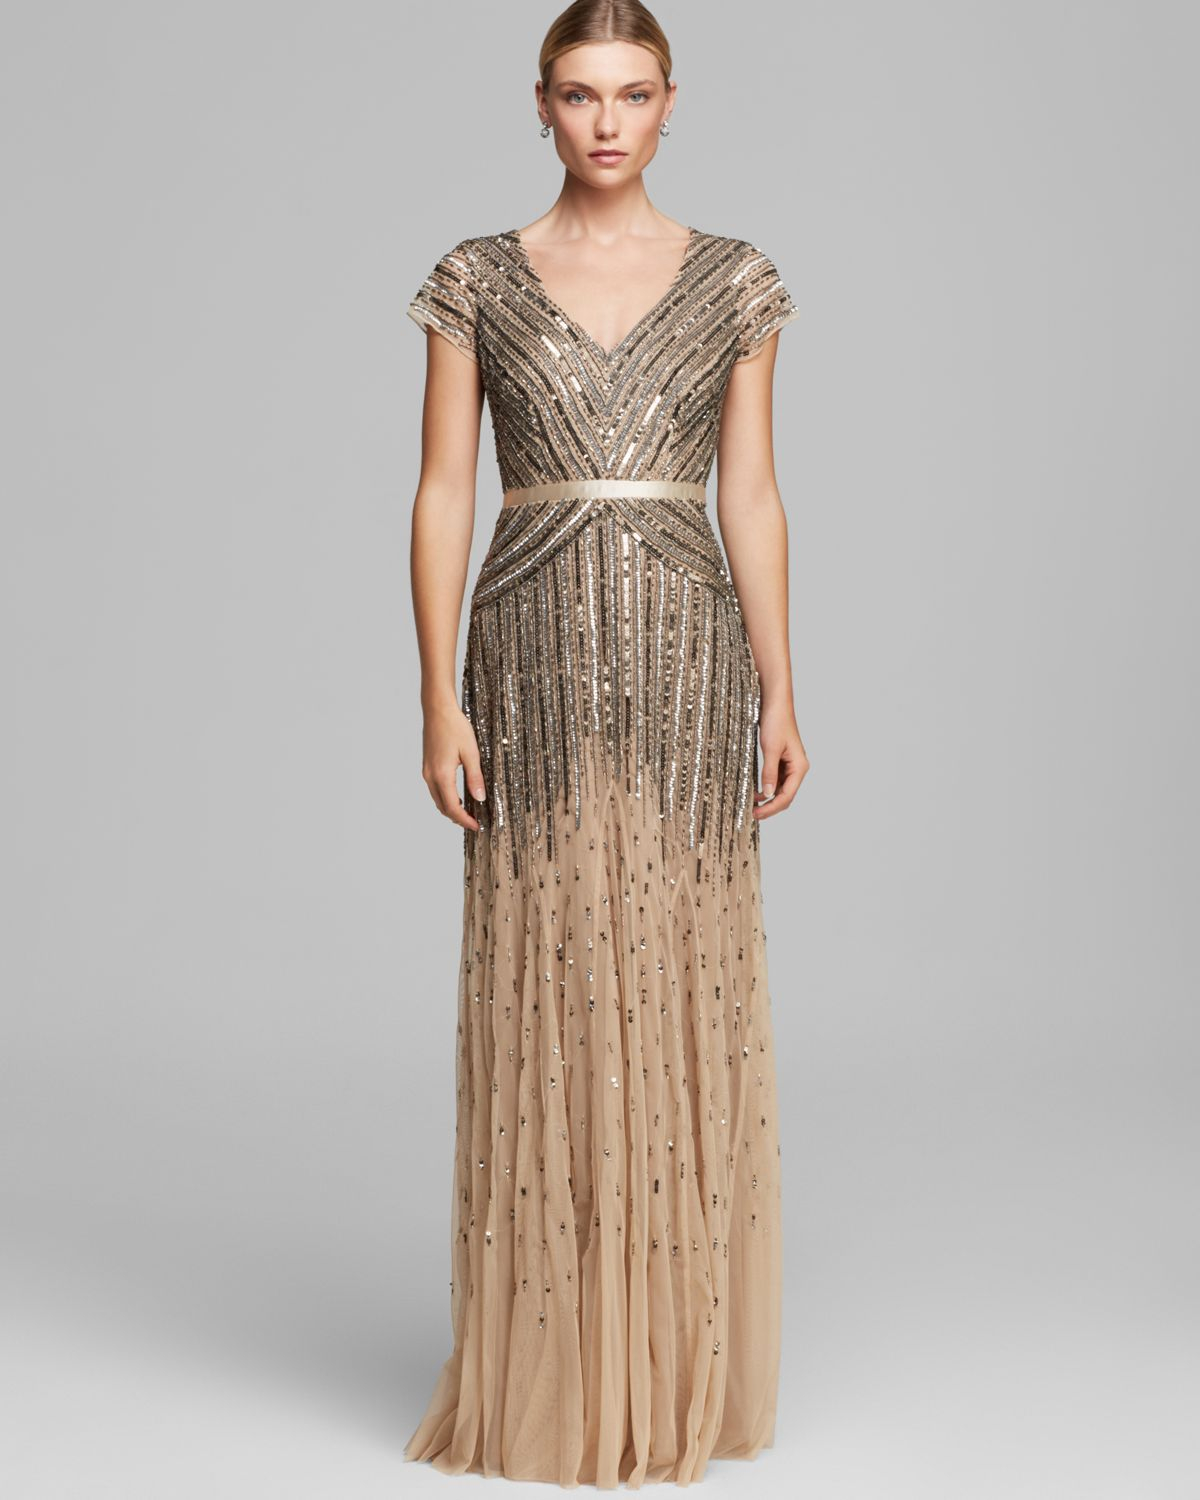 Adrianna Papell Dress V Neck Cap Sleeve Beaded In Brown